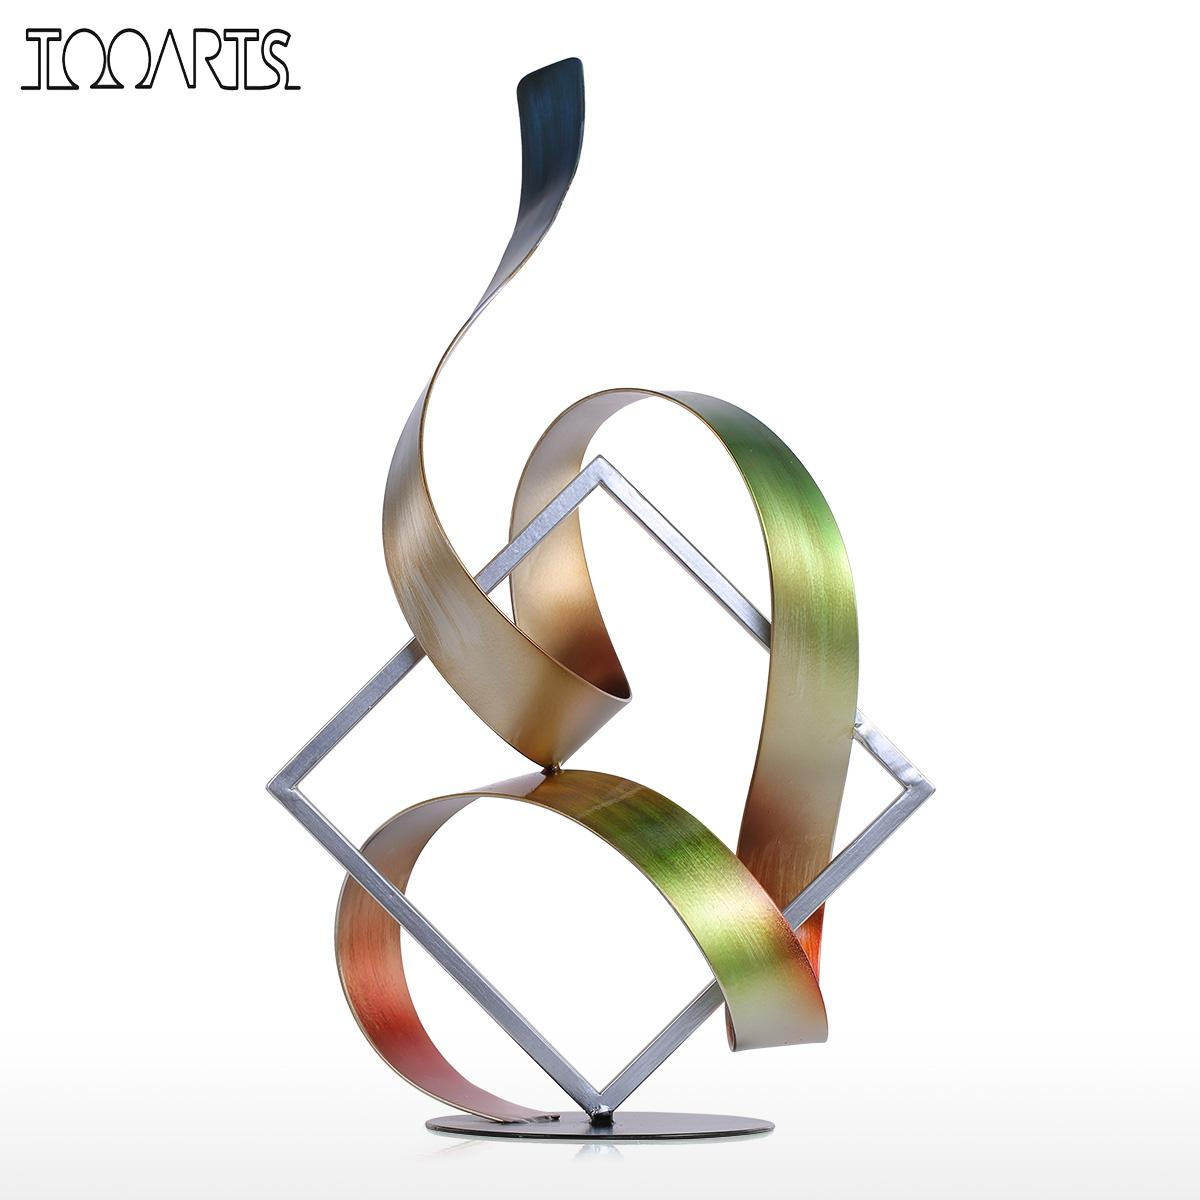 Tooarts Square and Ribbon Modern Abstract Sculpture home decoration accessories modern Figurine New Year Gift Christmas